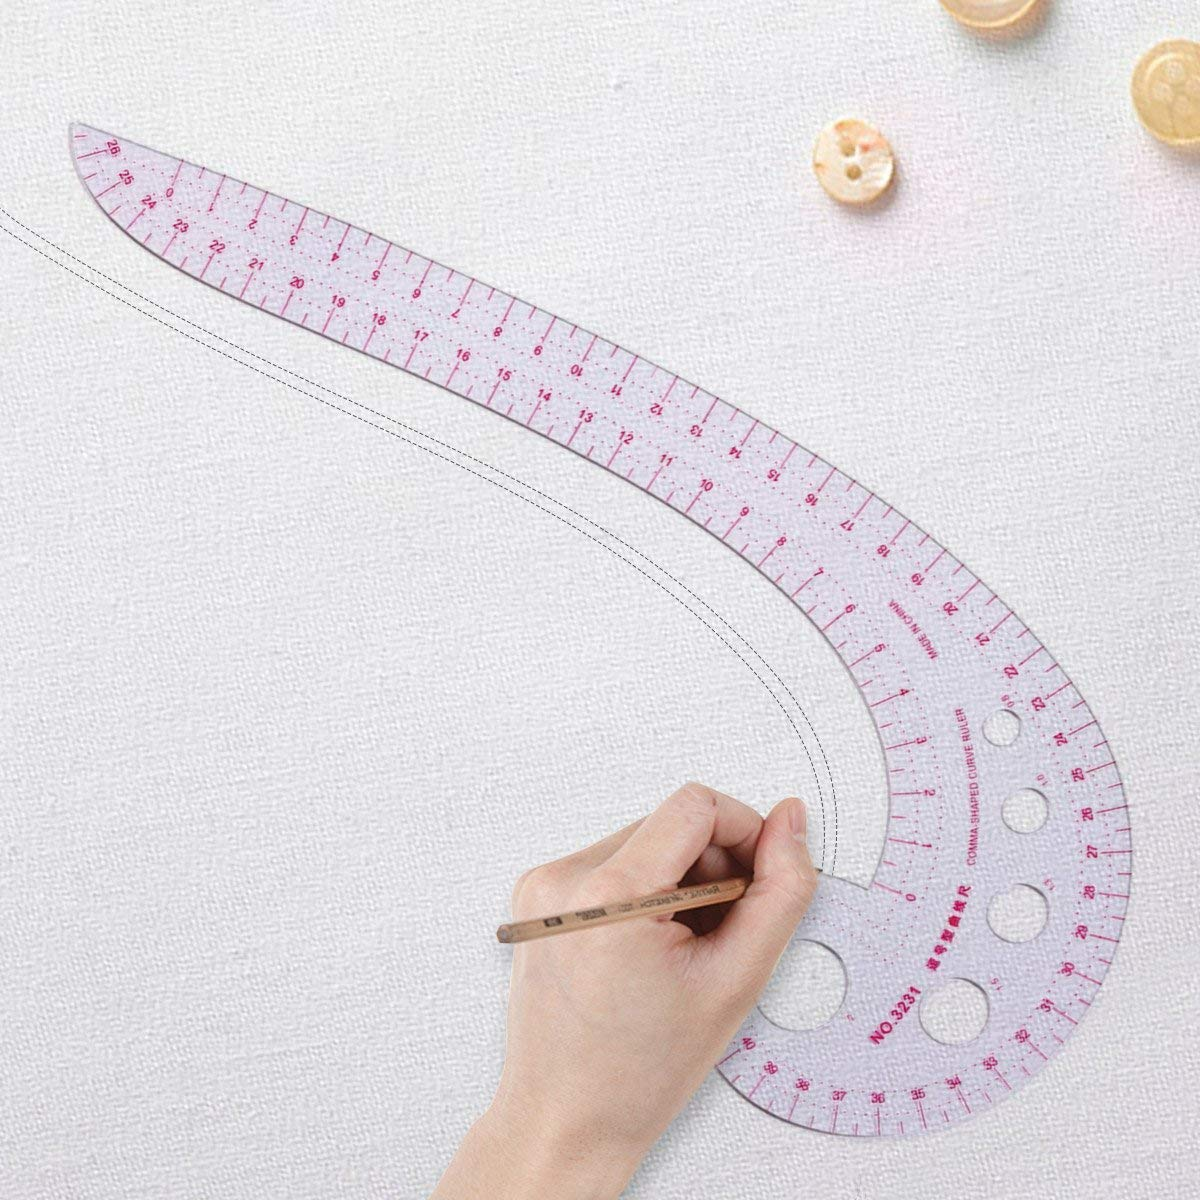 6 Stlye Plastic Curve Stick Pattern Design DIY Sewing Ruler Tailor Set French Curve Ruler Accessories